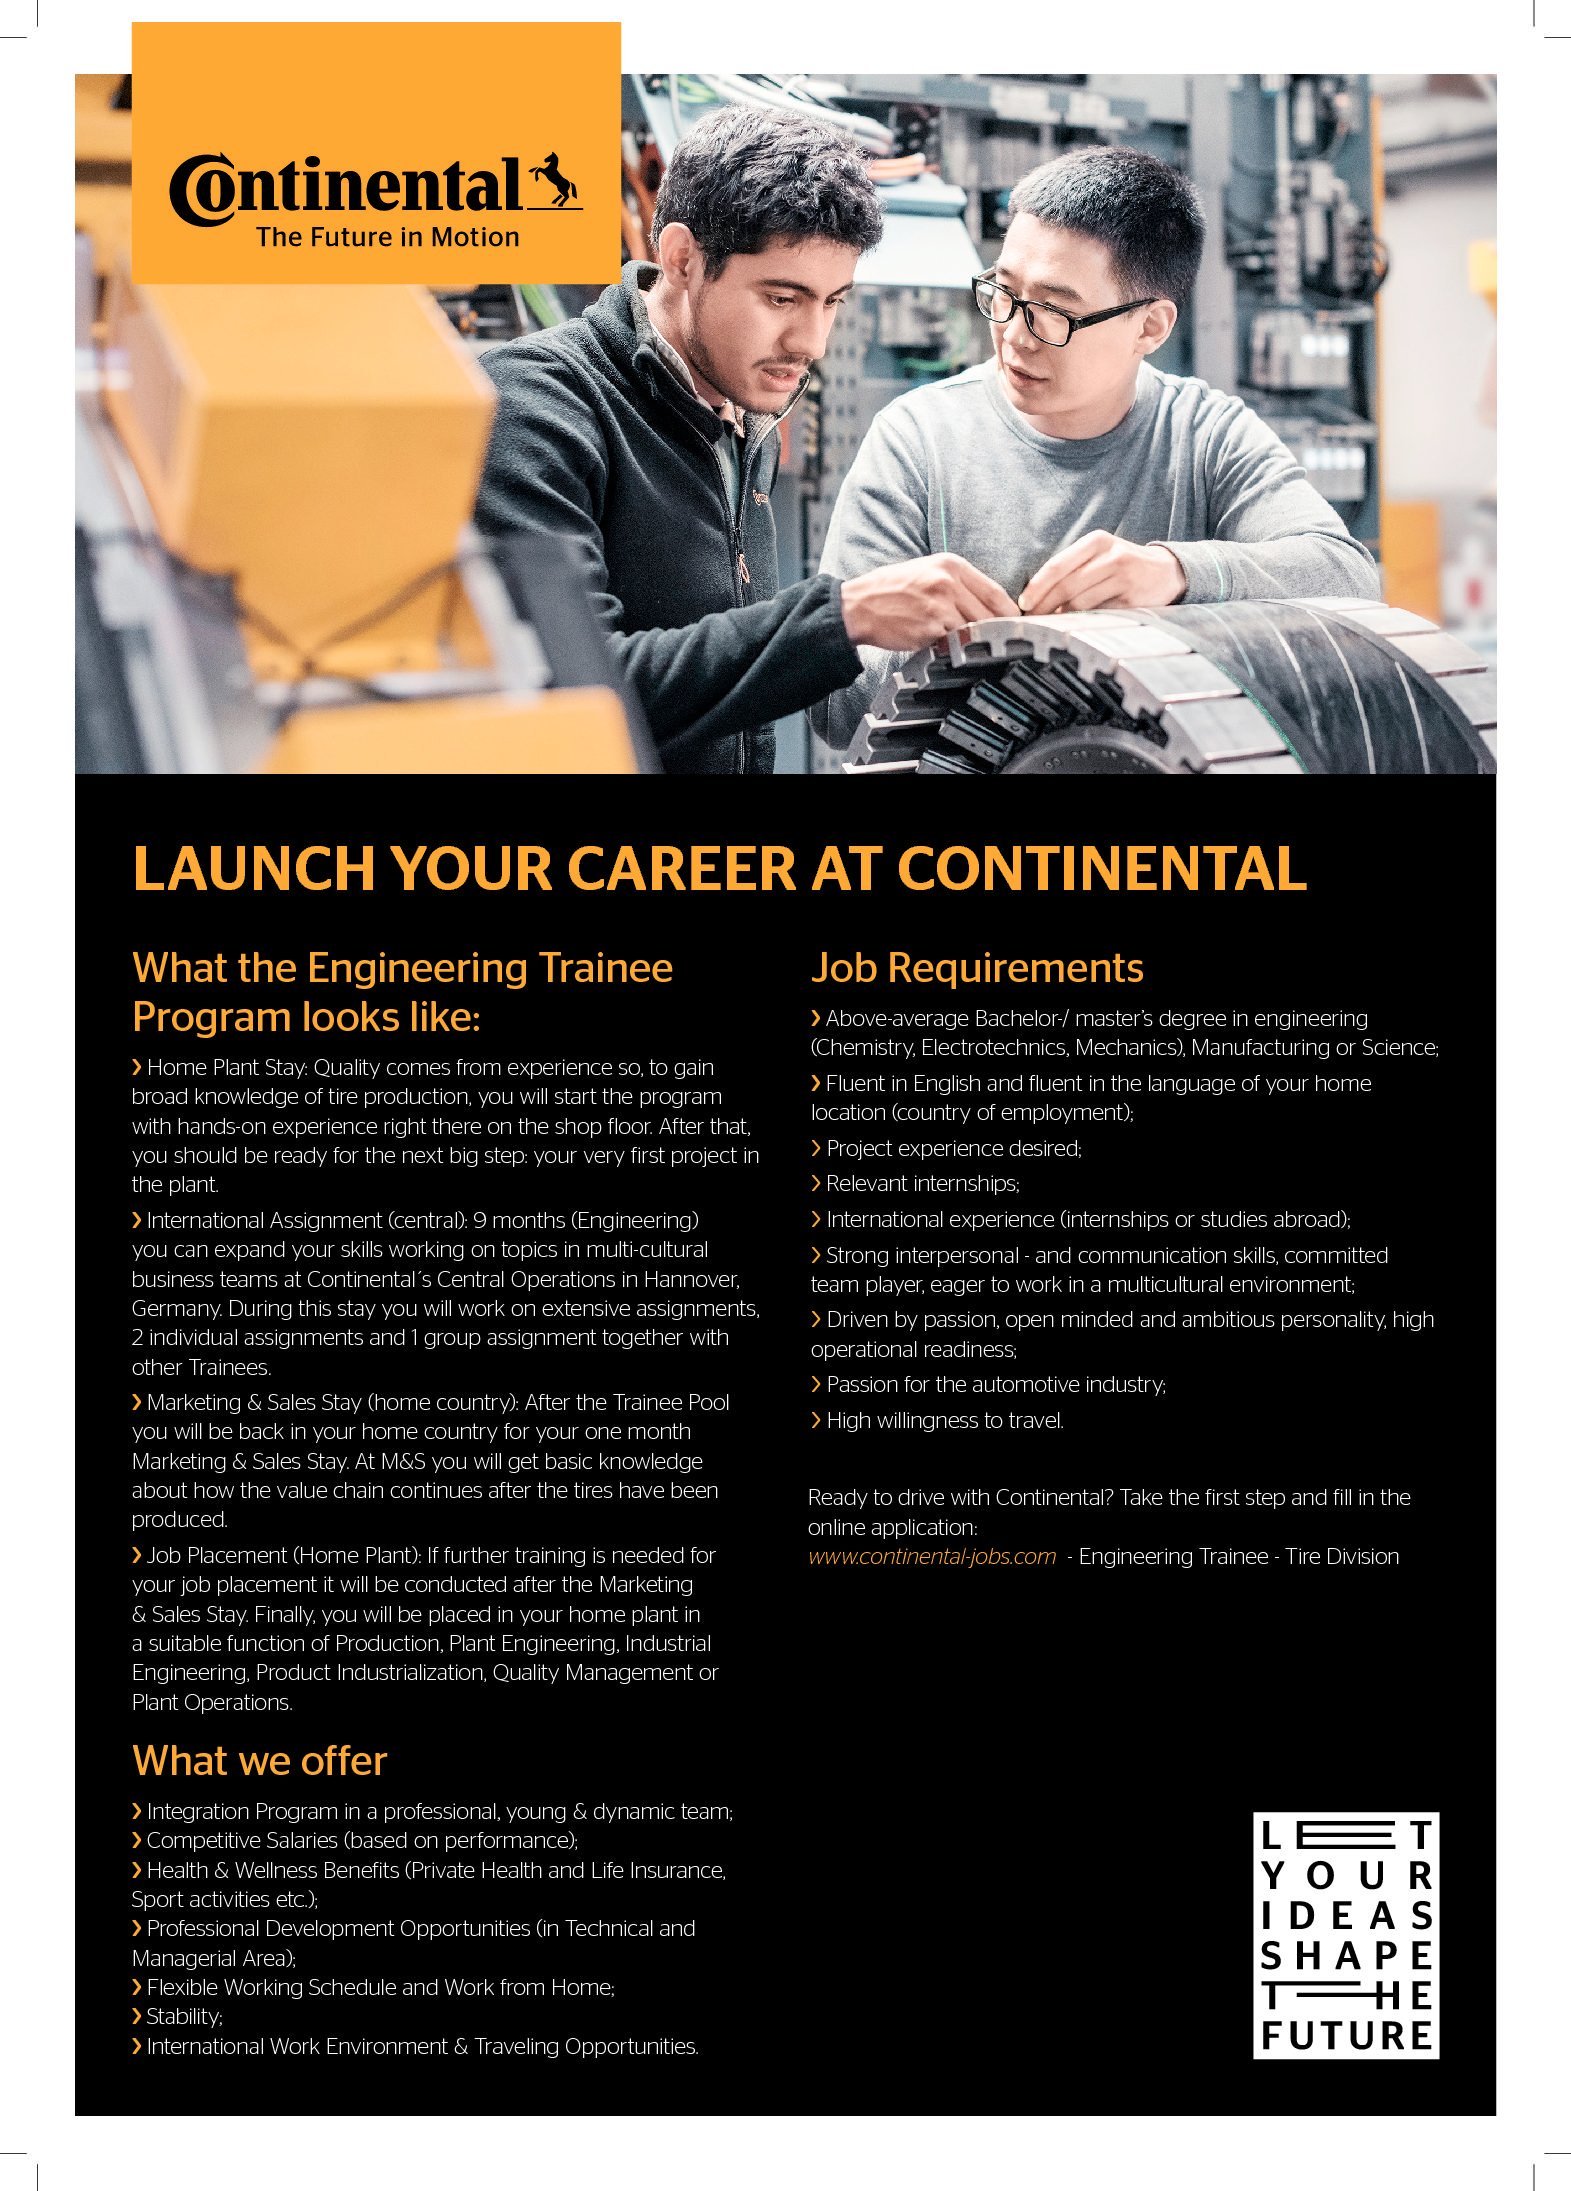 Launch your career at Continental